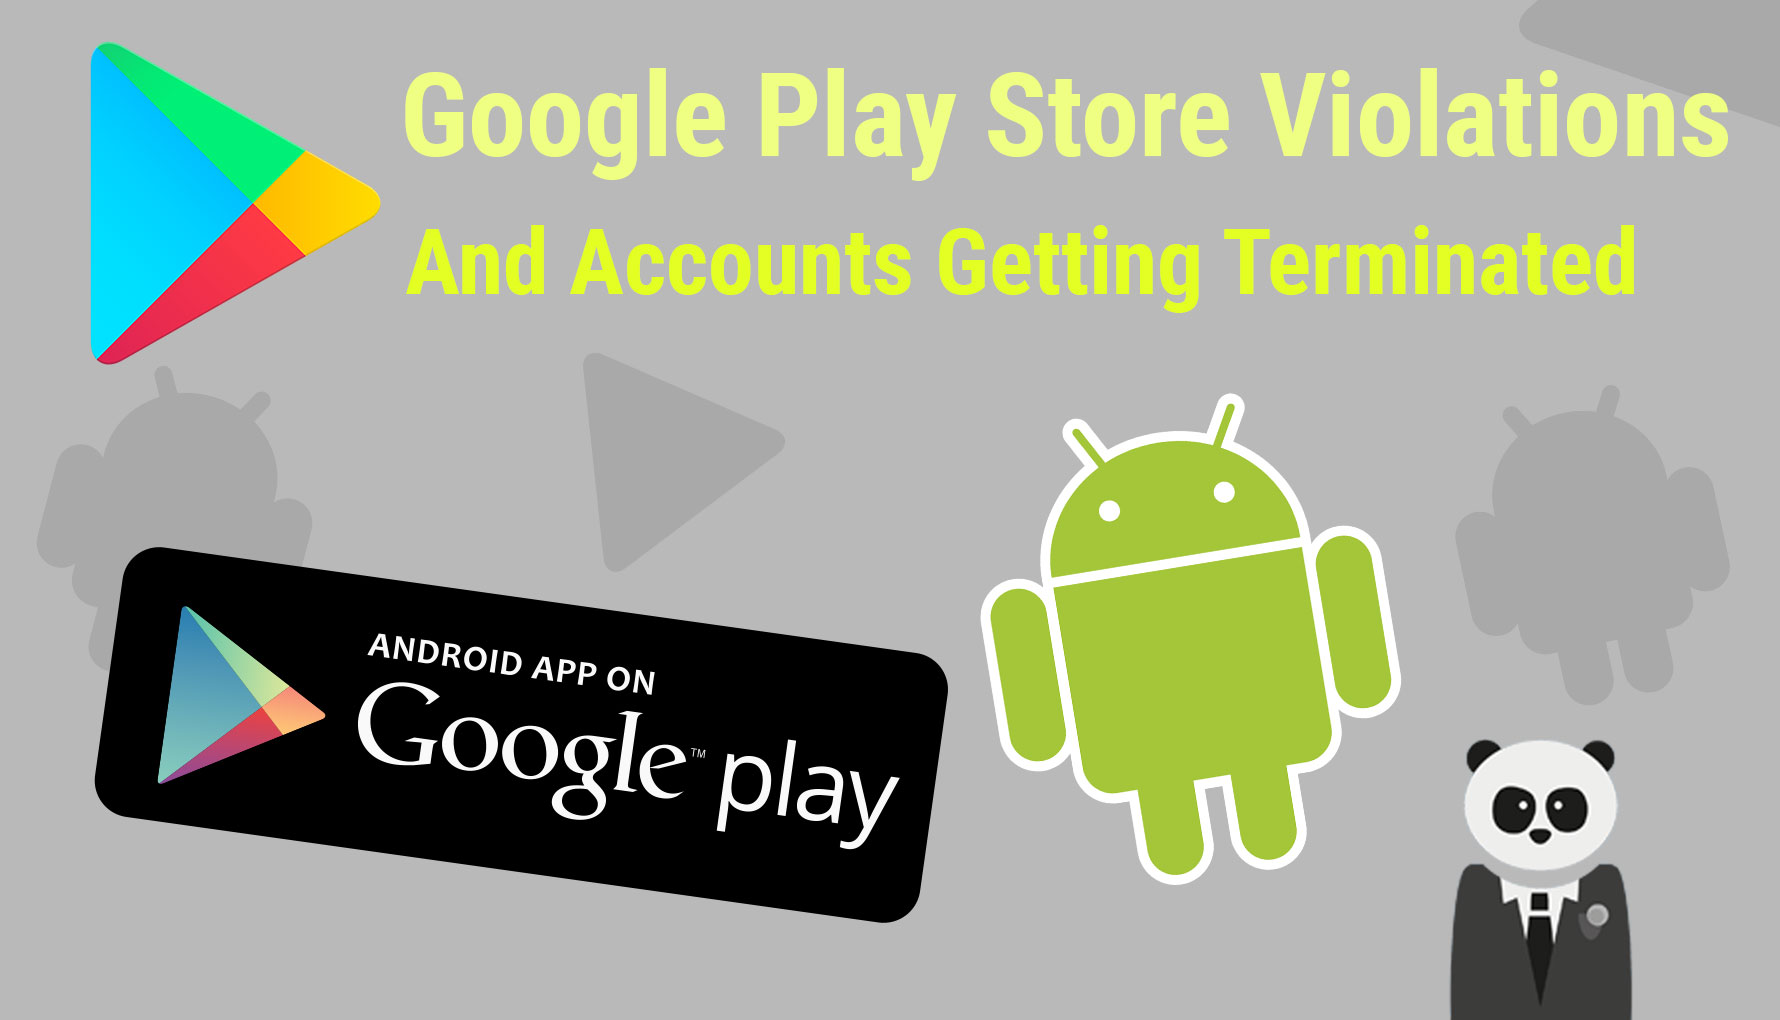 Google Play Store Violations and Accounts Getting Terminated